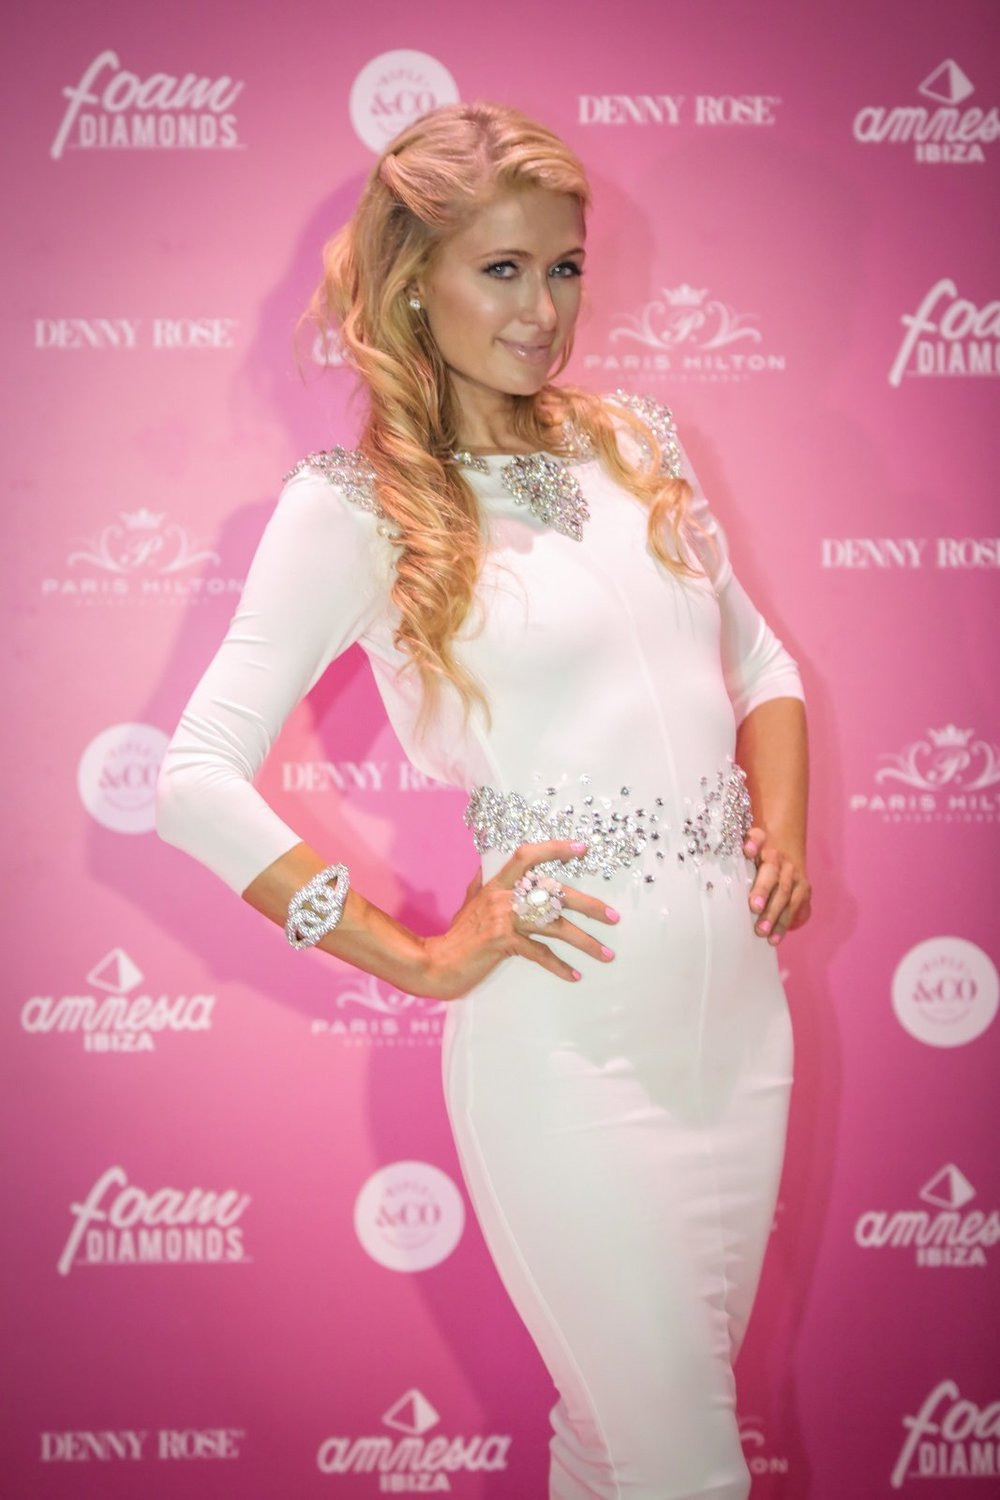 PARIS HILTON FOAM AND DIAMONDS AMNESIA IBIZA 2014 BY JAMES CHAPMAN-009.jpg